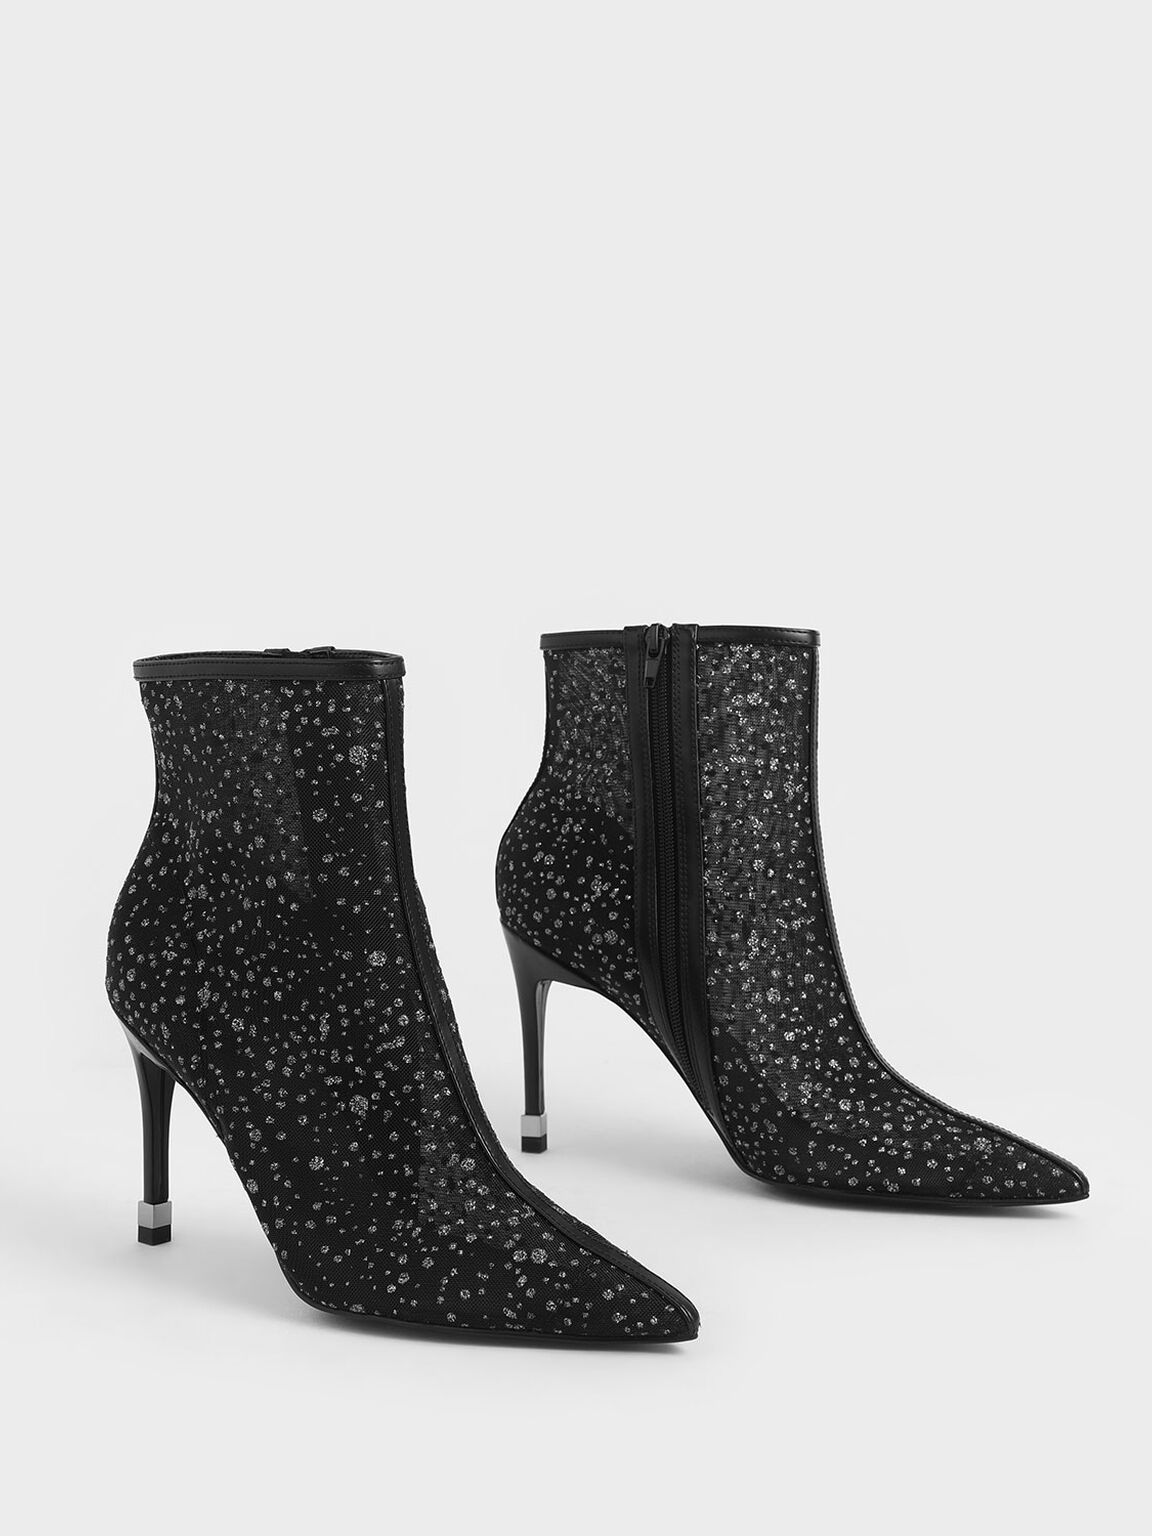 Mesh Stiletto Ankle Boots, Black Textured, hi-res